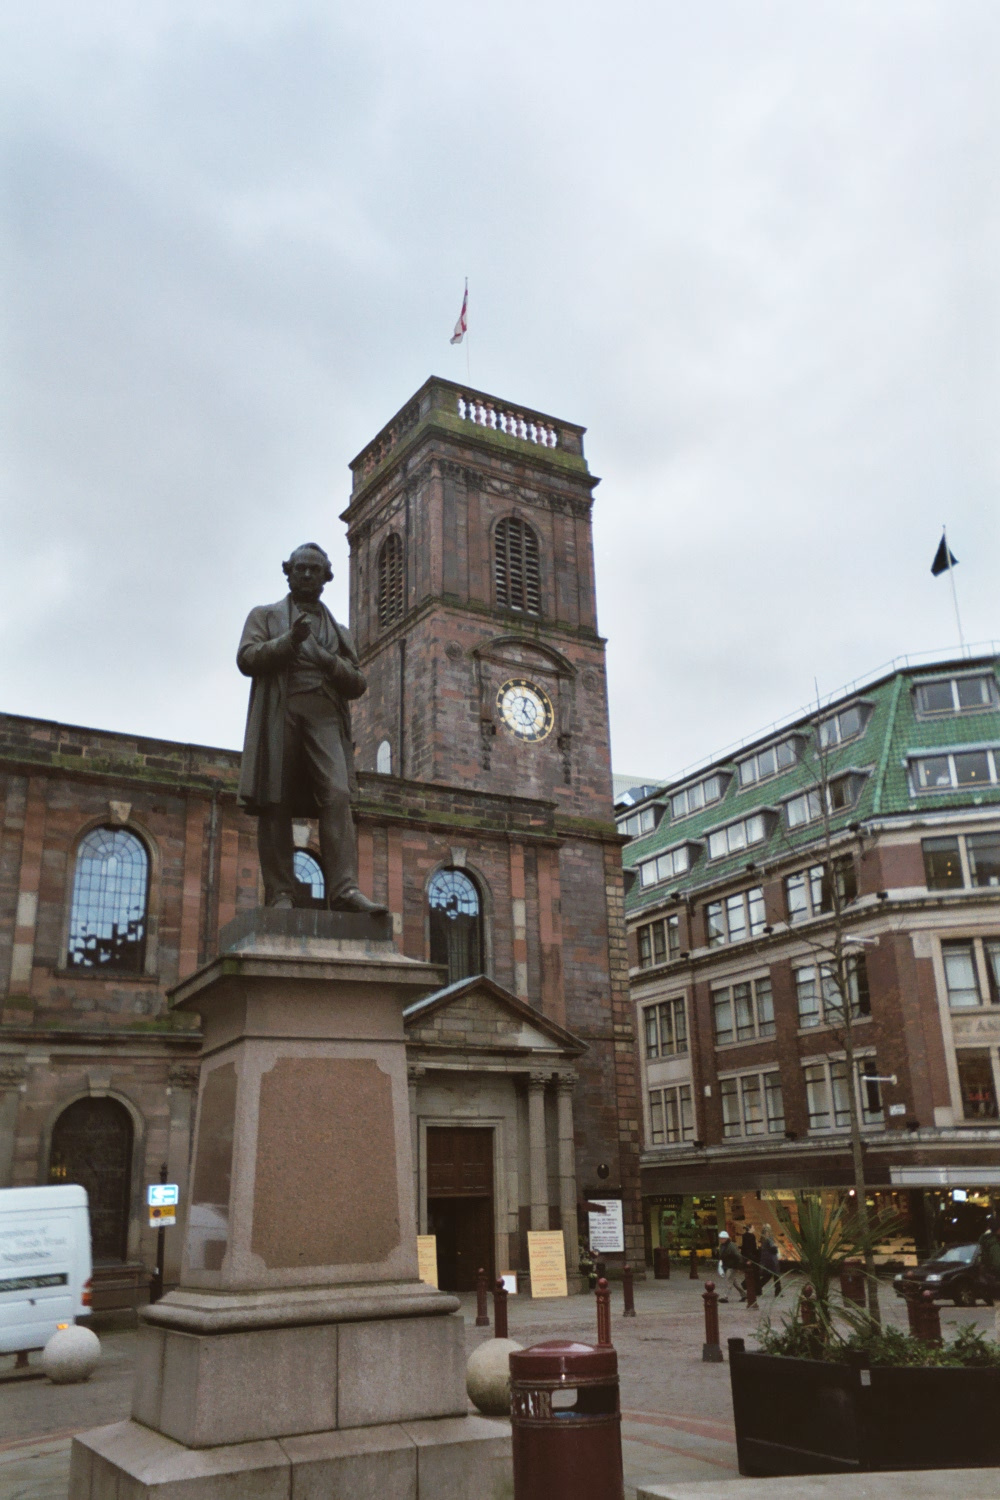 Statue of Richard Cobden, St Ann's Square, Manchester